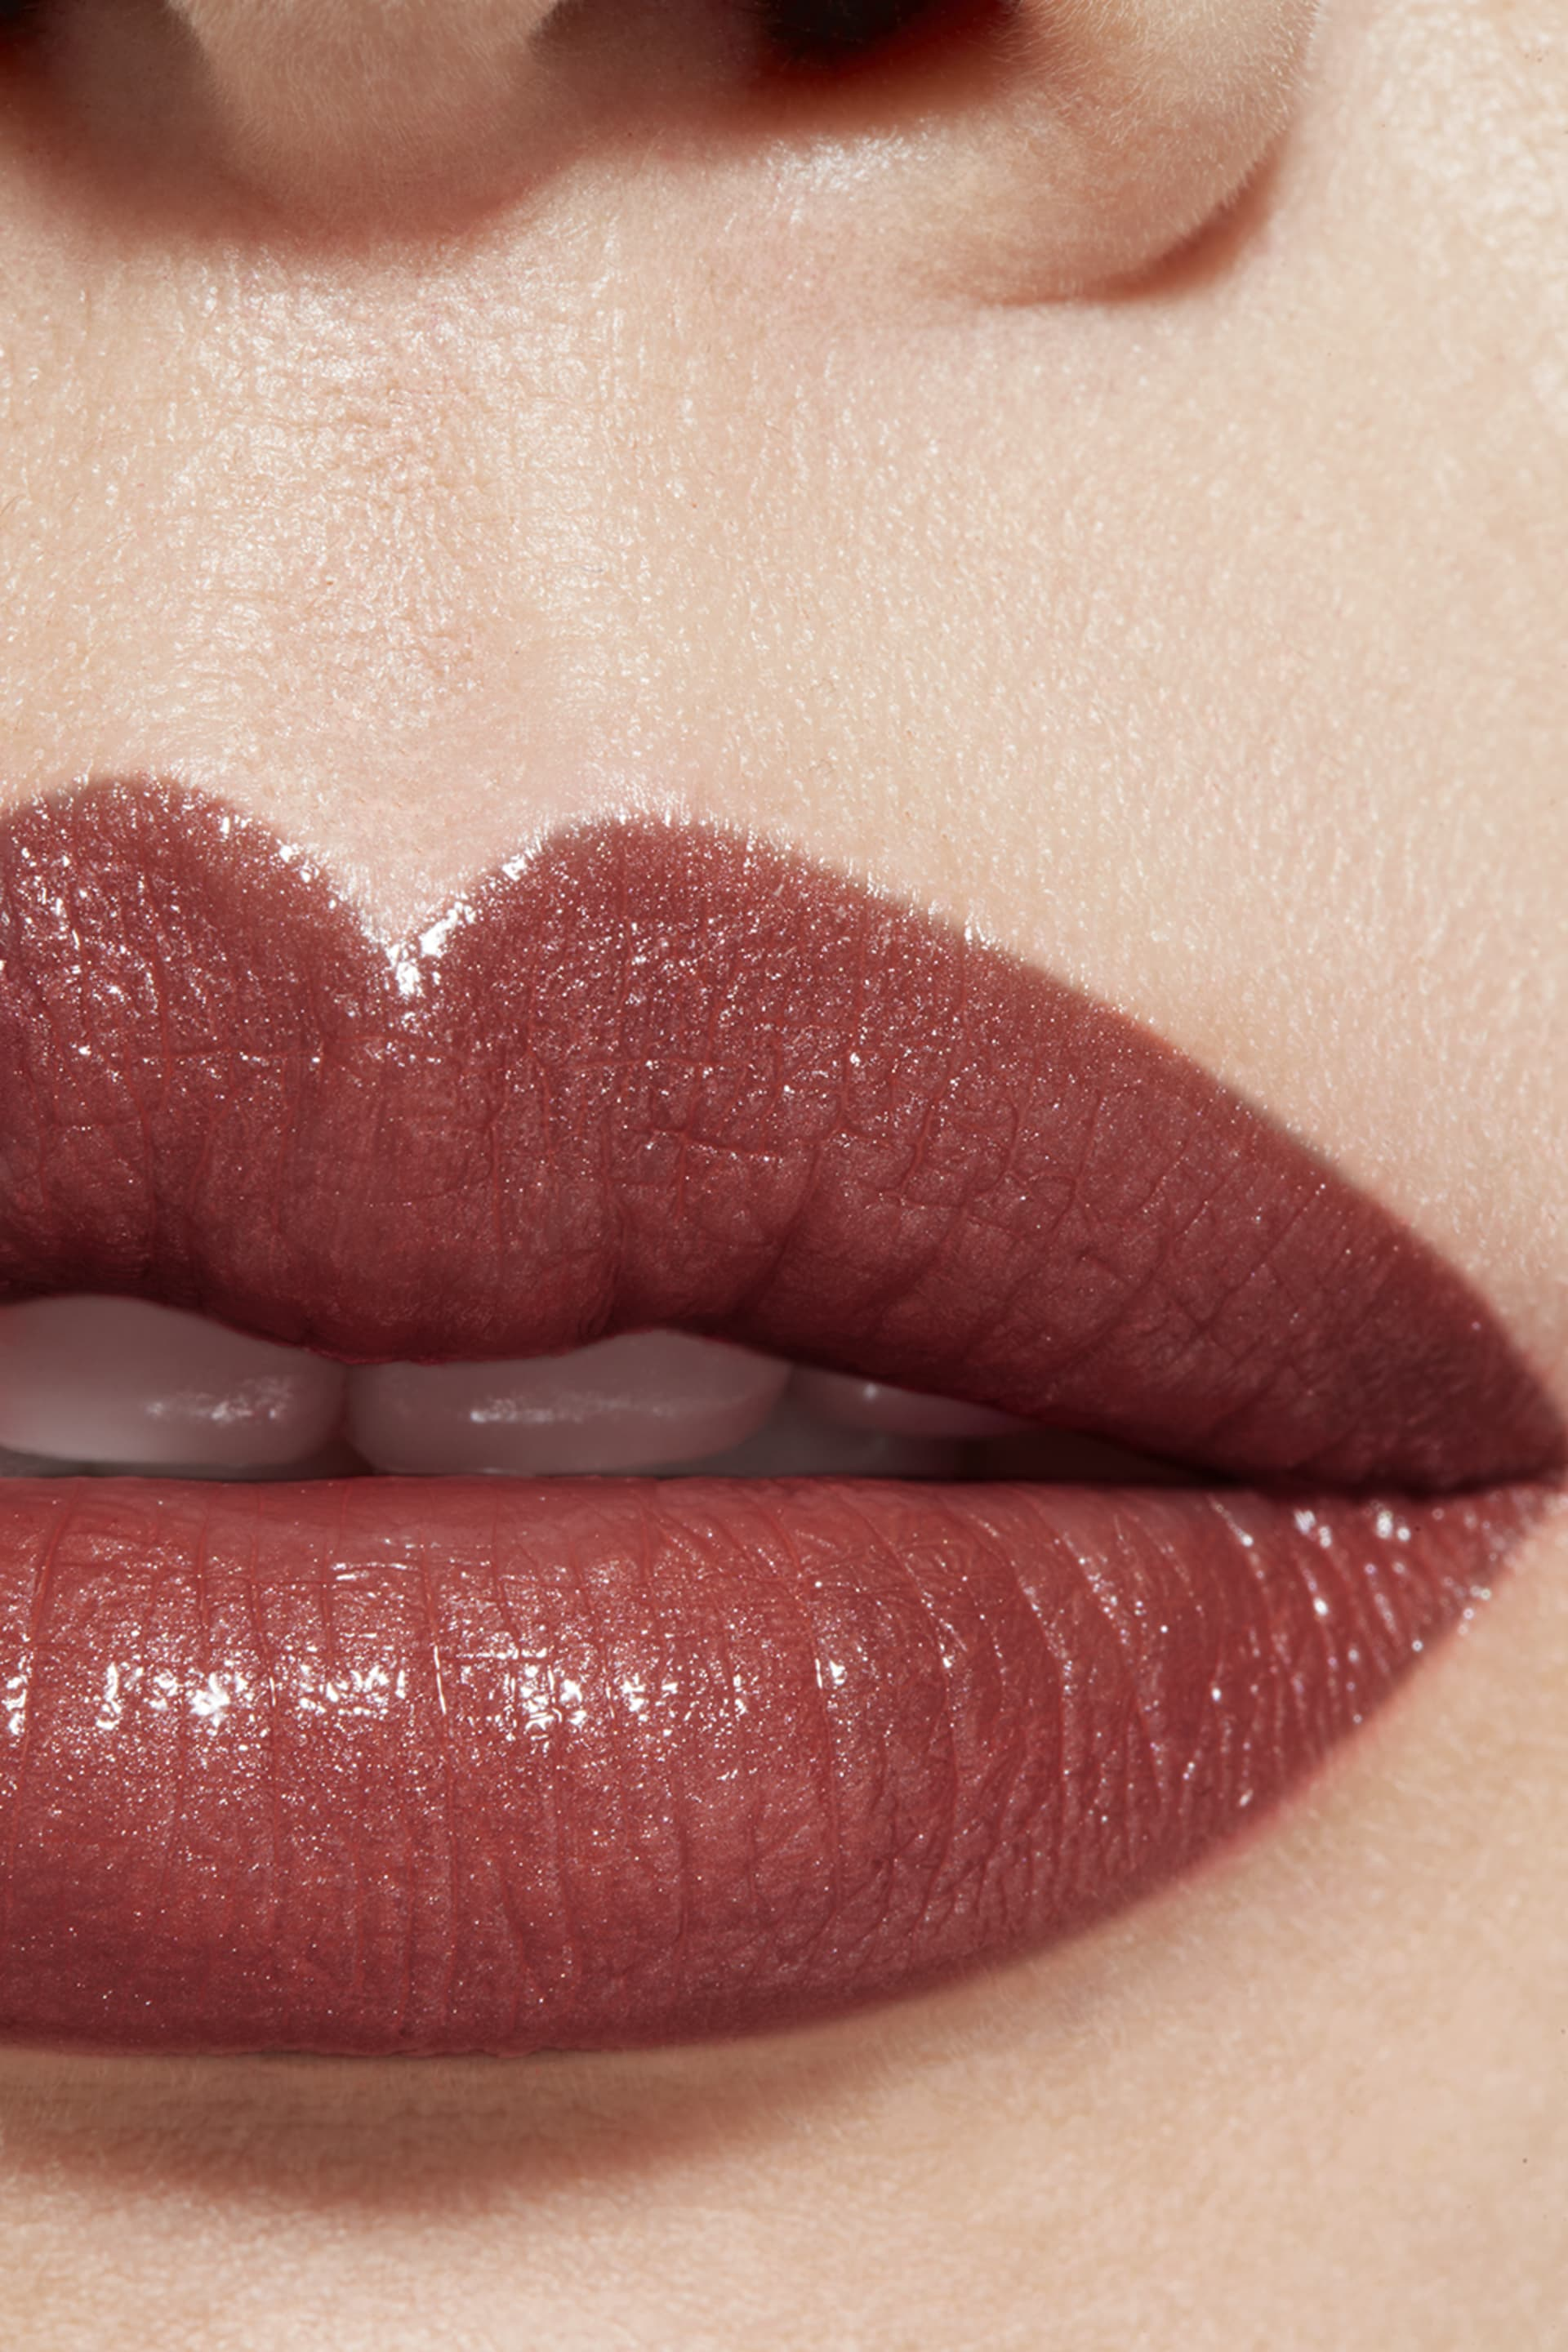 Application makeup visual 1 - ROUGE COCO 406 - ANTOINETTE